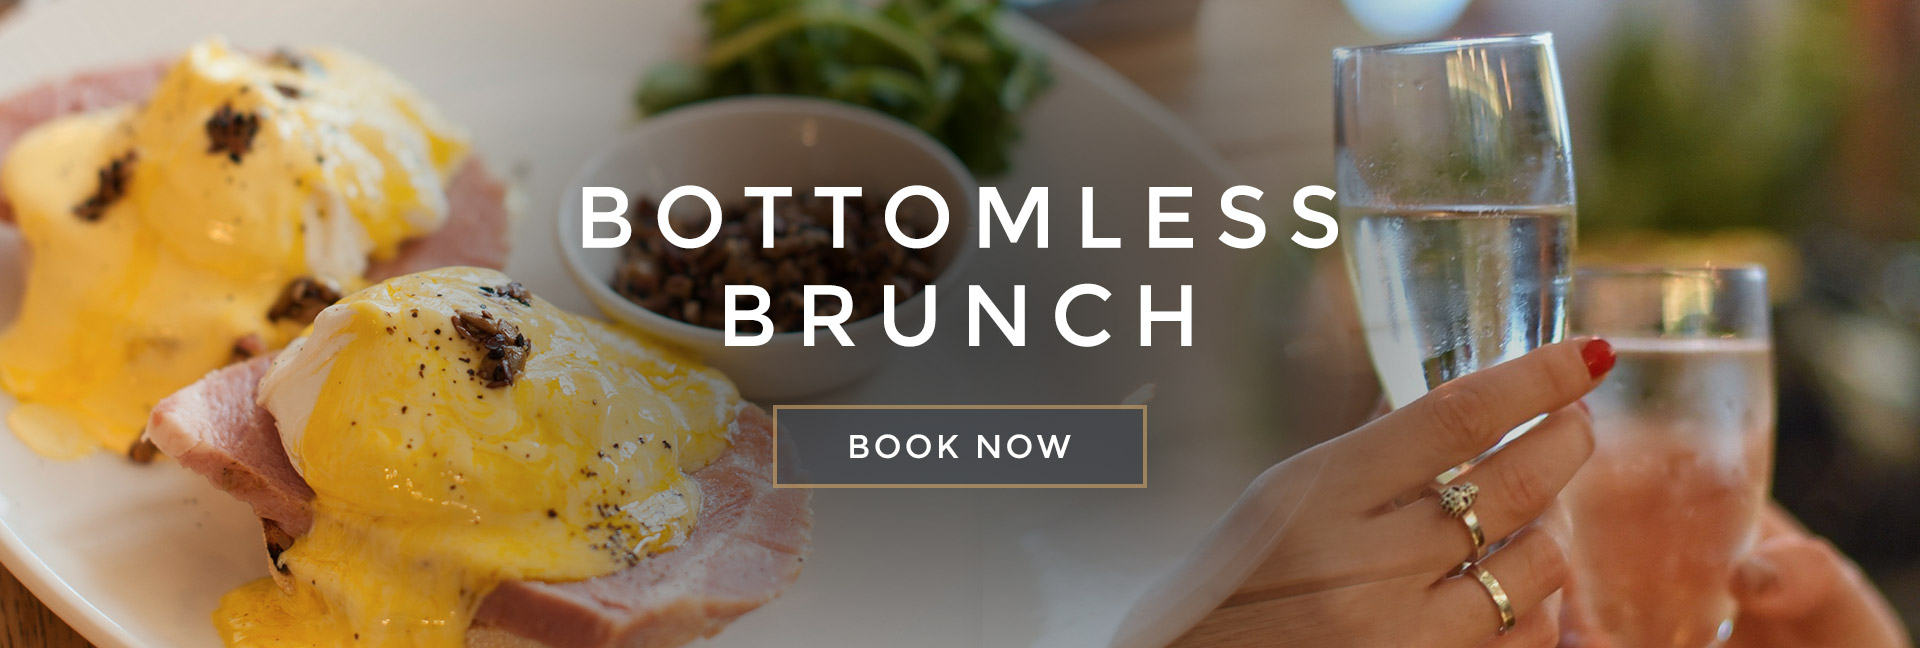 Bottomless Brunch at All Bar One Exchange Edinburgh - Book now